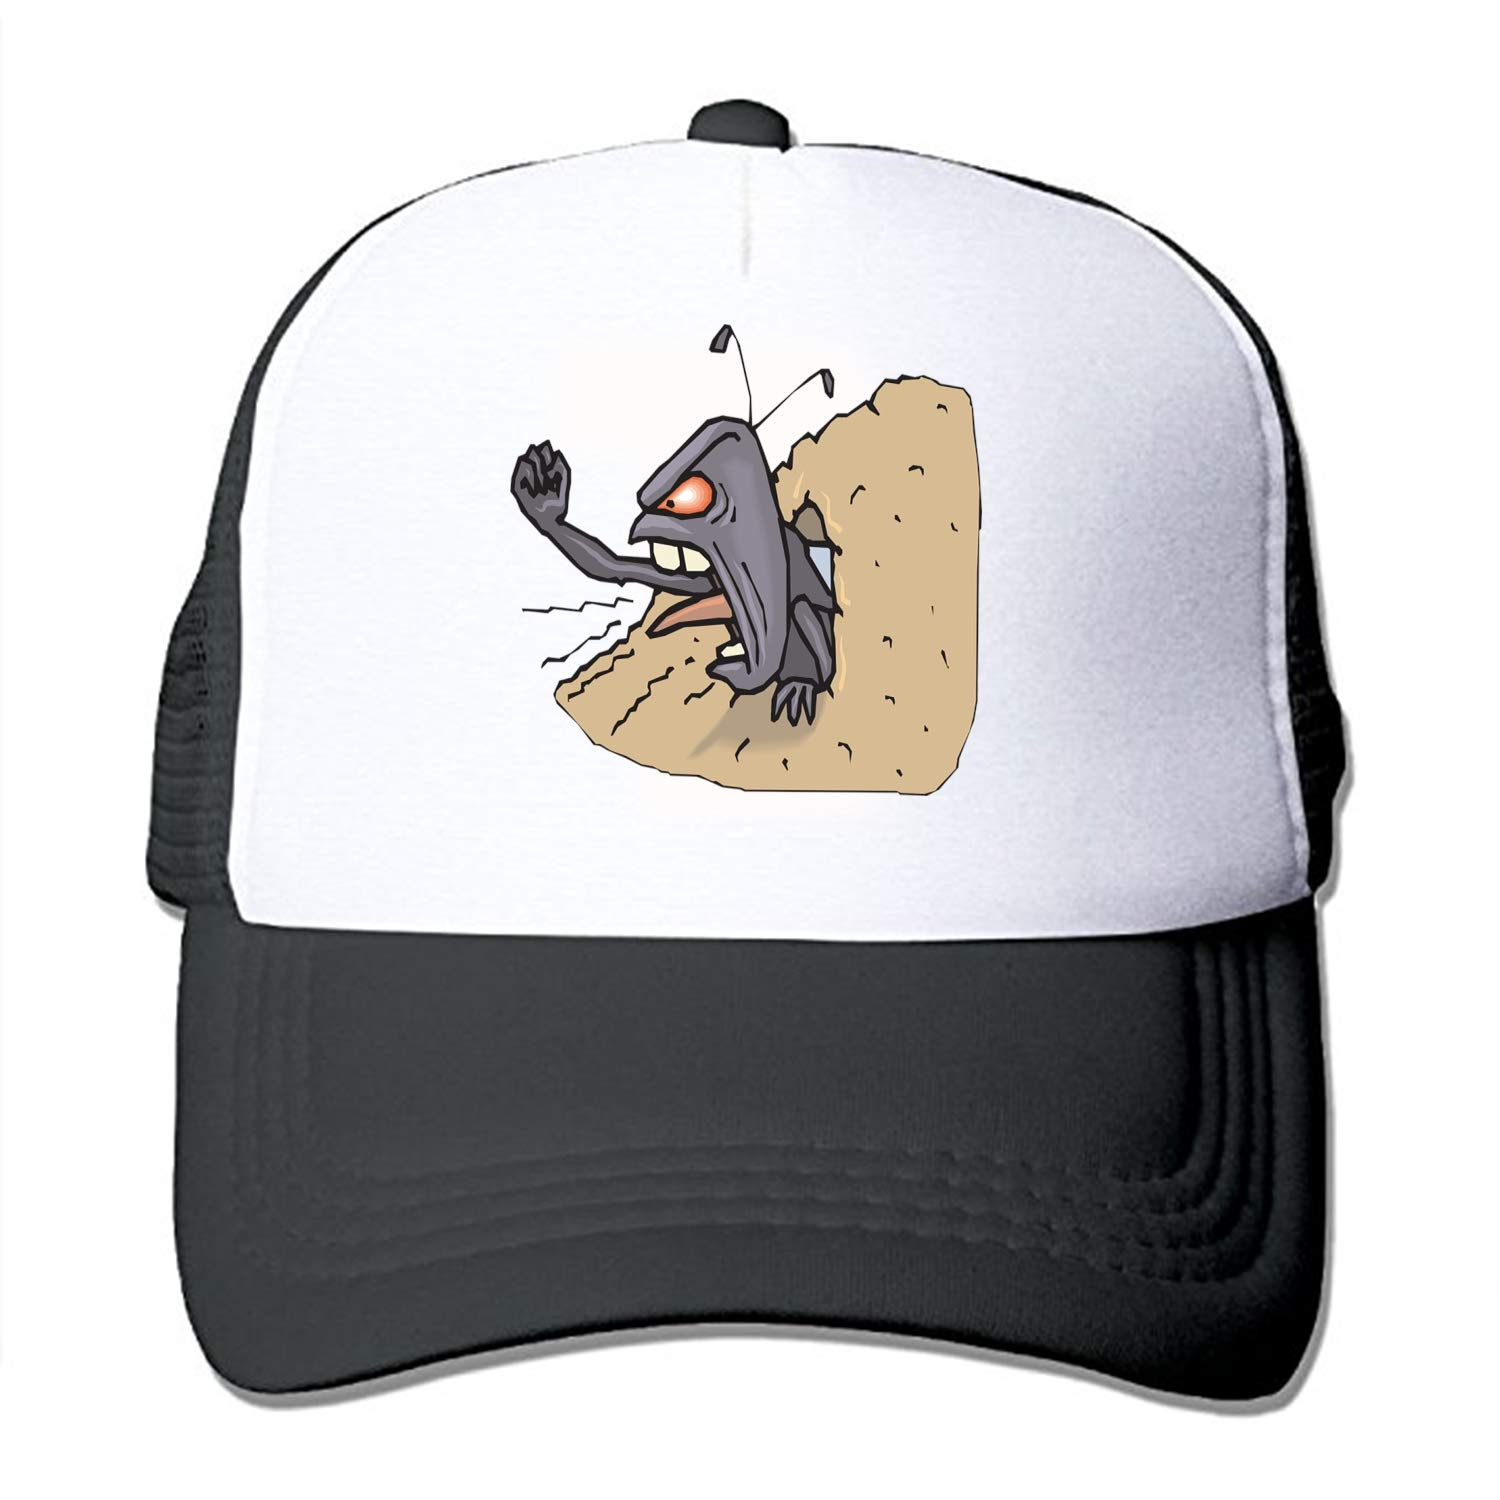 MANYOR Angry Ant Hole Hill Fist Upset Insect Dirt Unisex Adjustable Snapback  Hip Hop Hat Low Profile Baseball Cap at Amazon Men s Clothing store  a621b45457ec